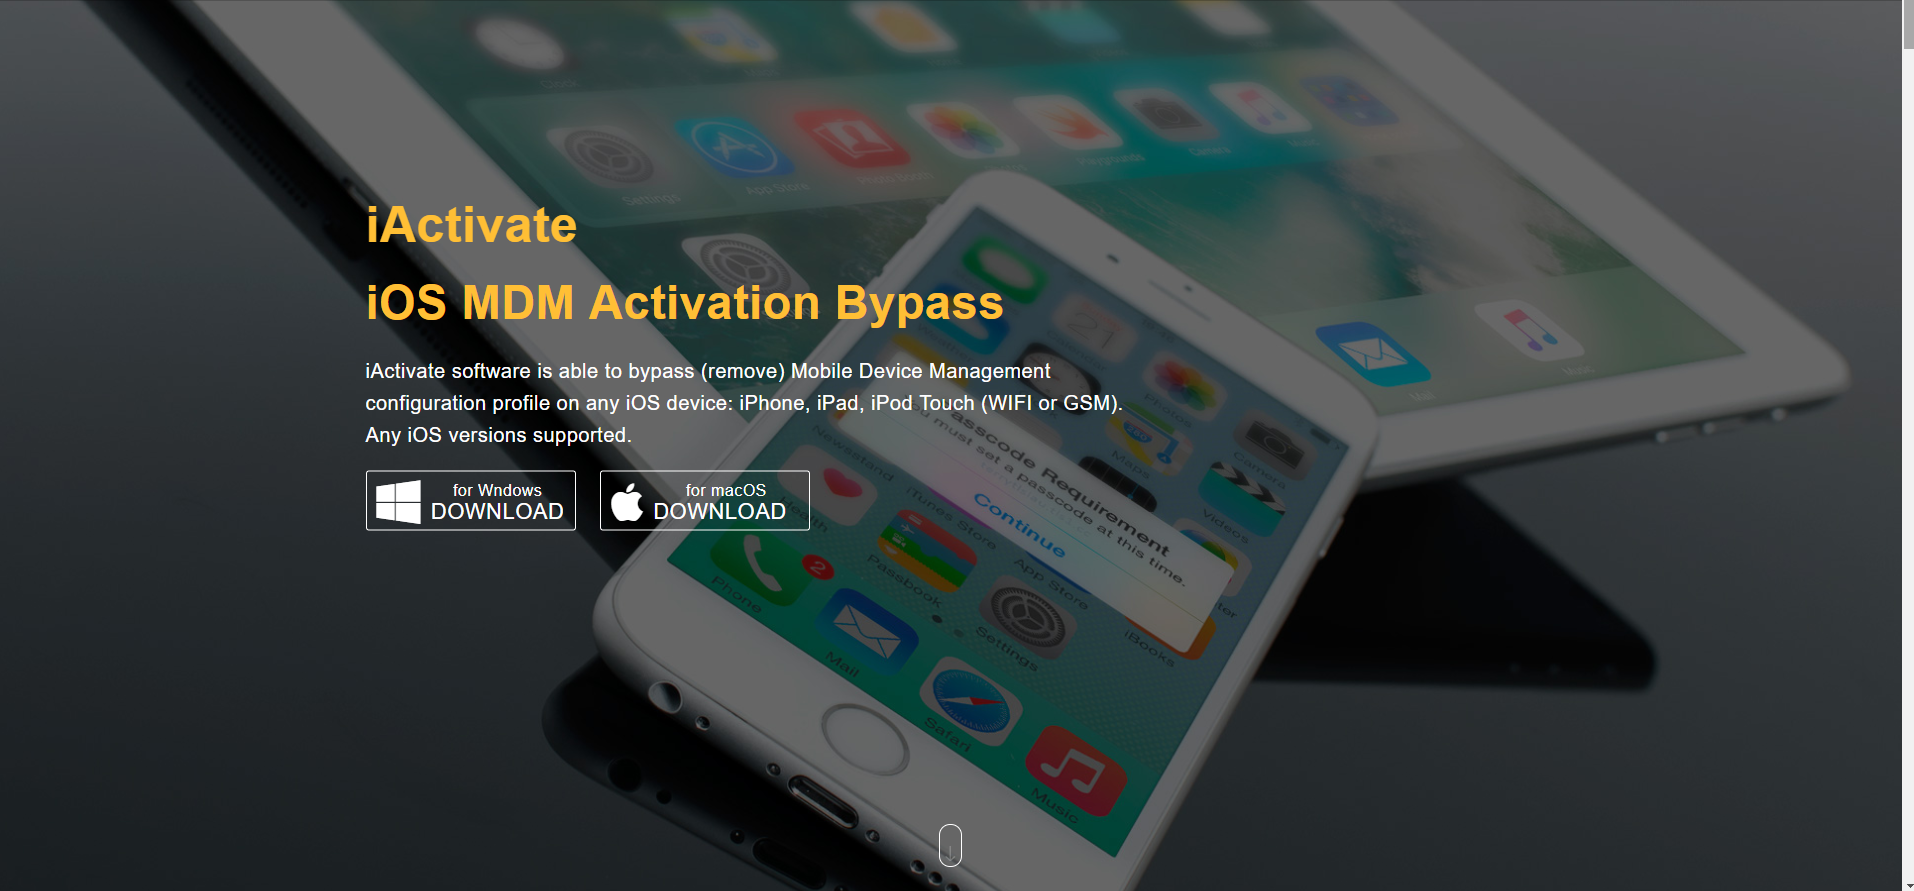 How to Use iActivate - Removing MDM from an iPad